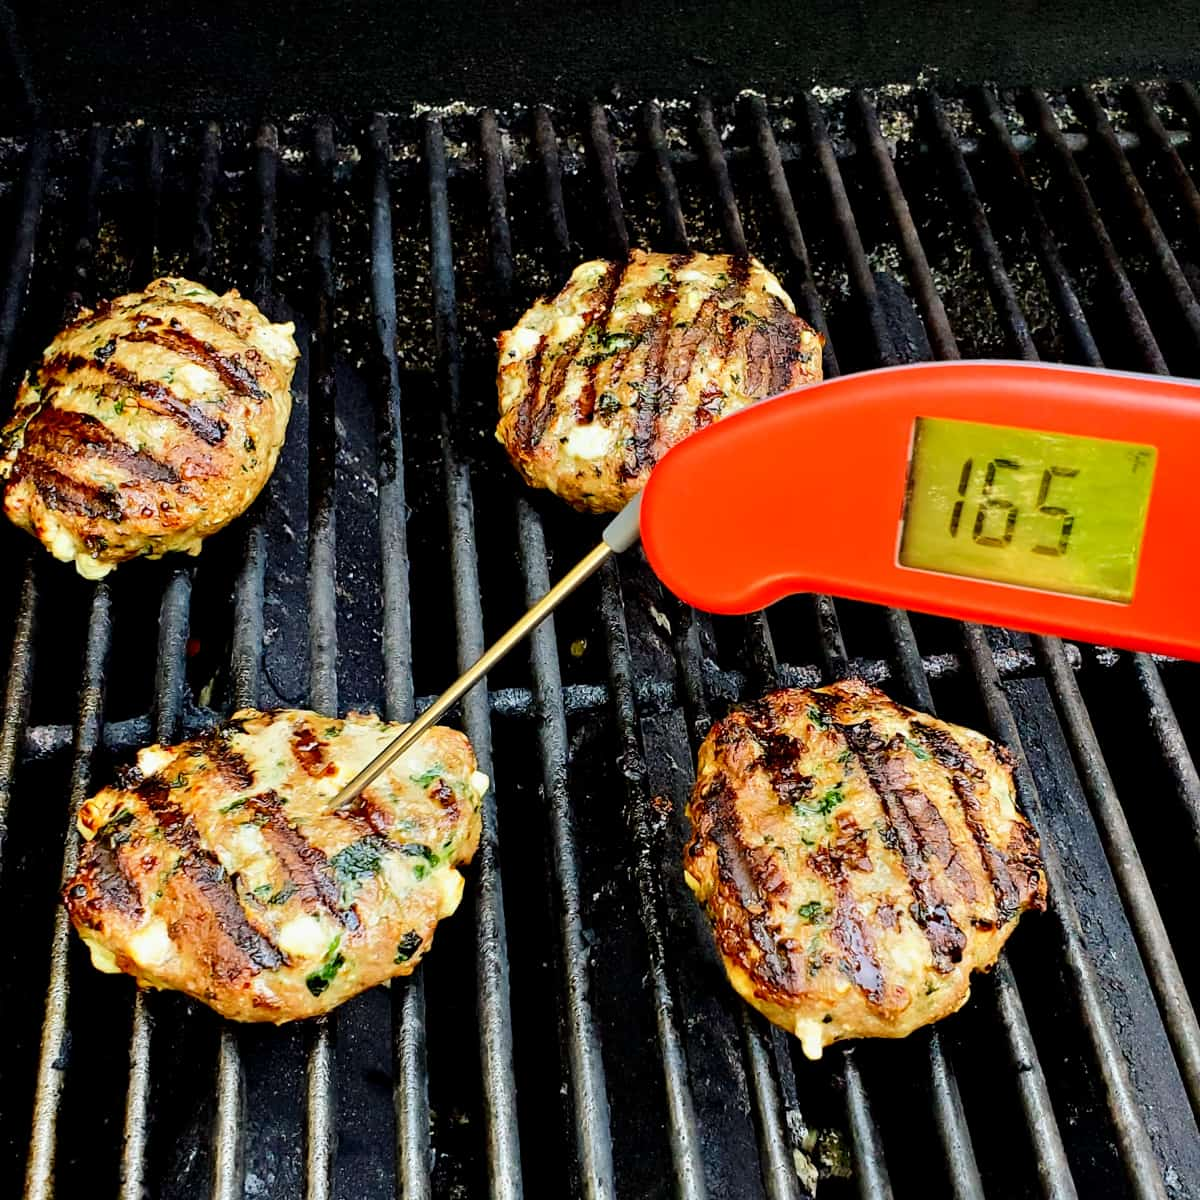 Cooked turkey burgers on the grill with a thermometer instered showing a final temperature of 165 degrees.